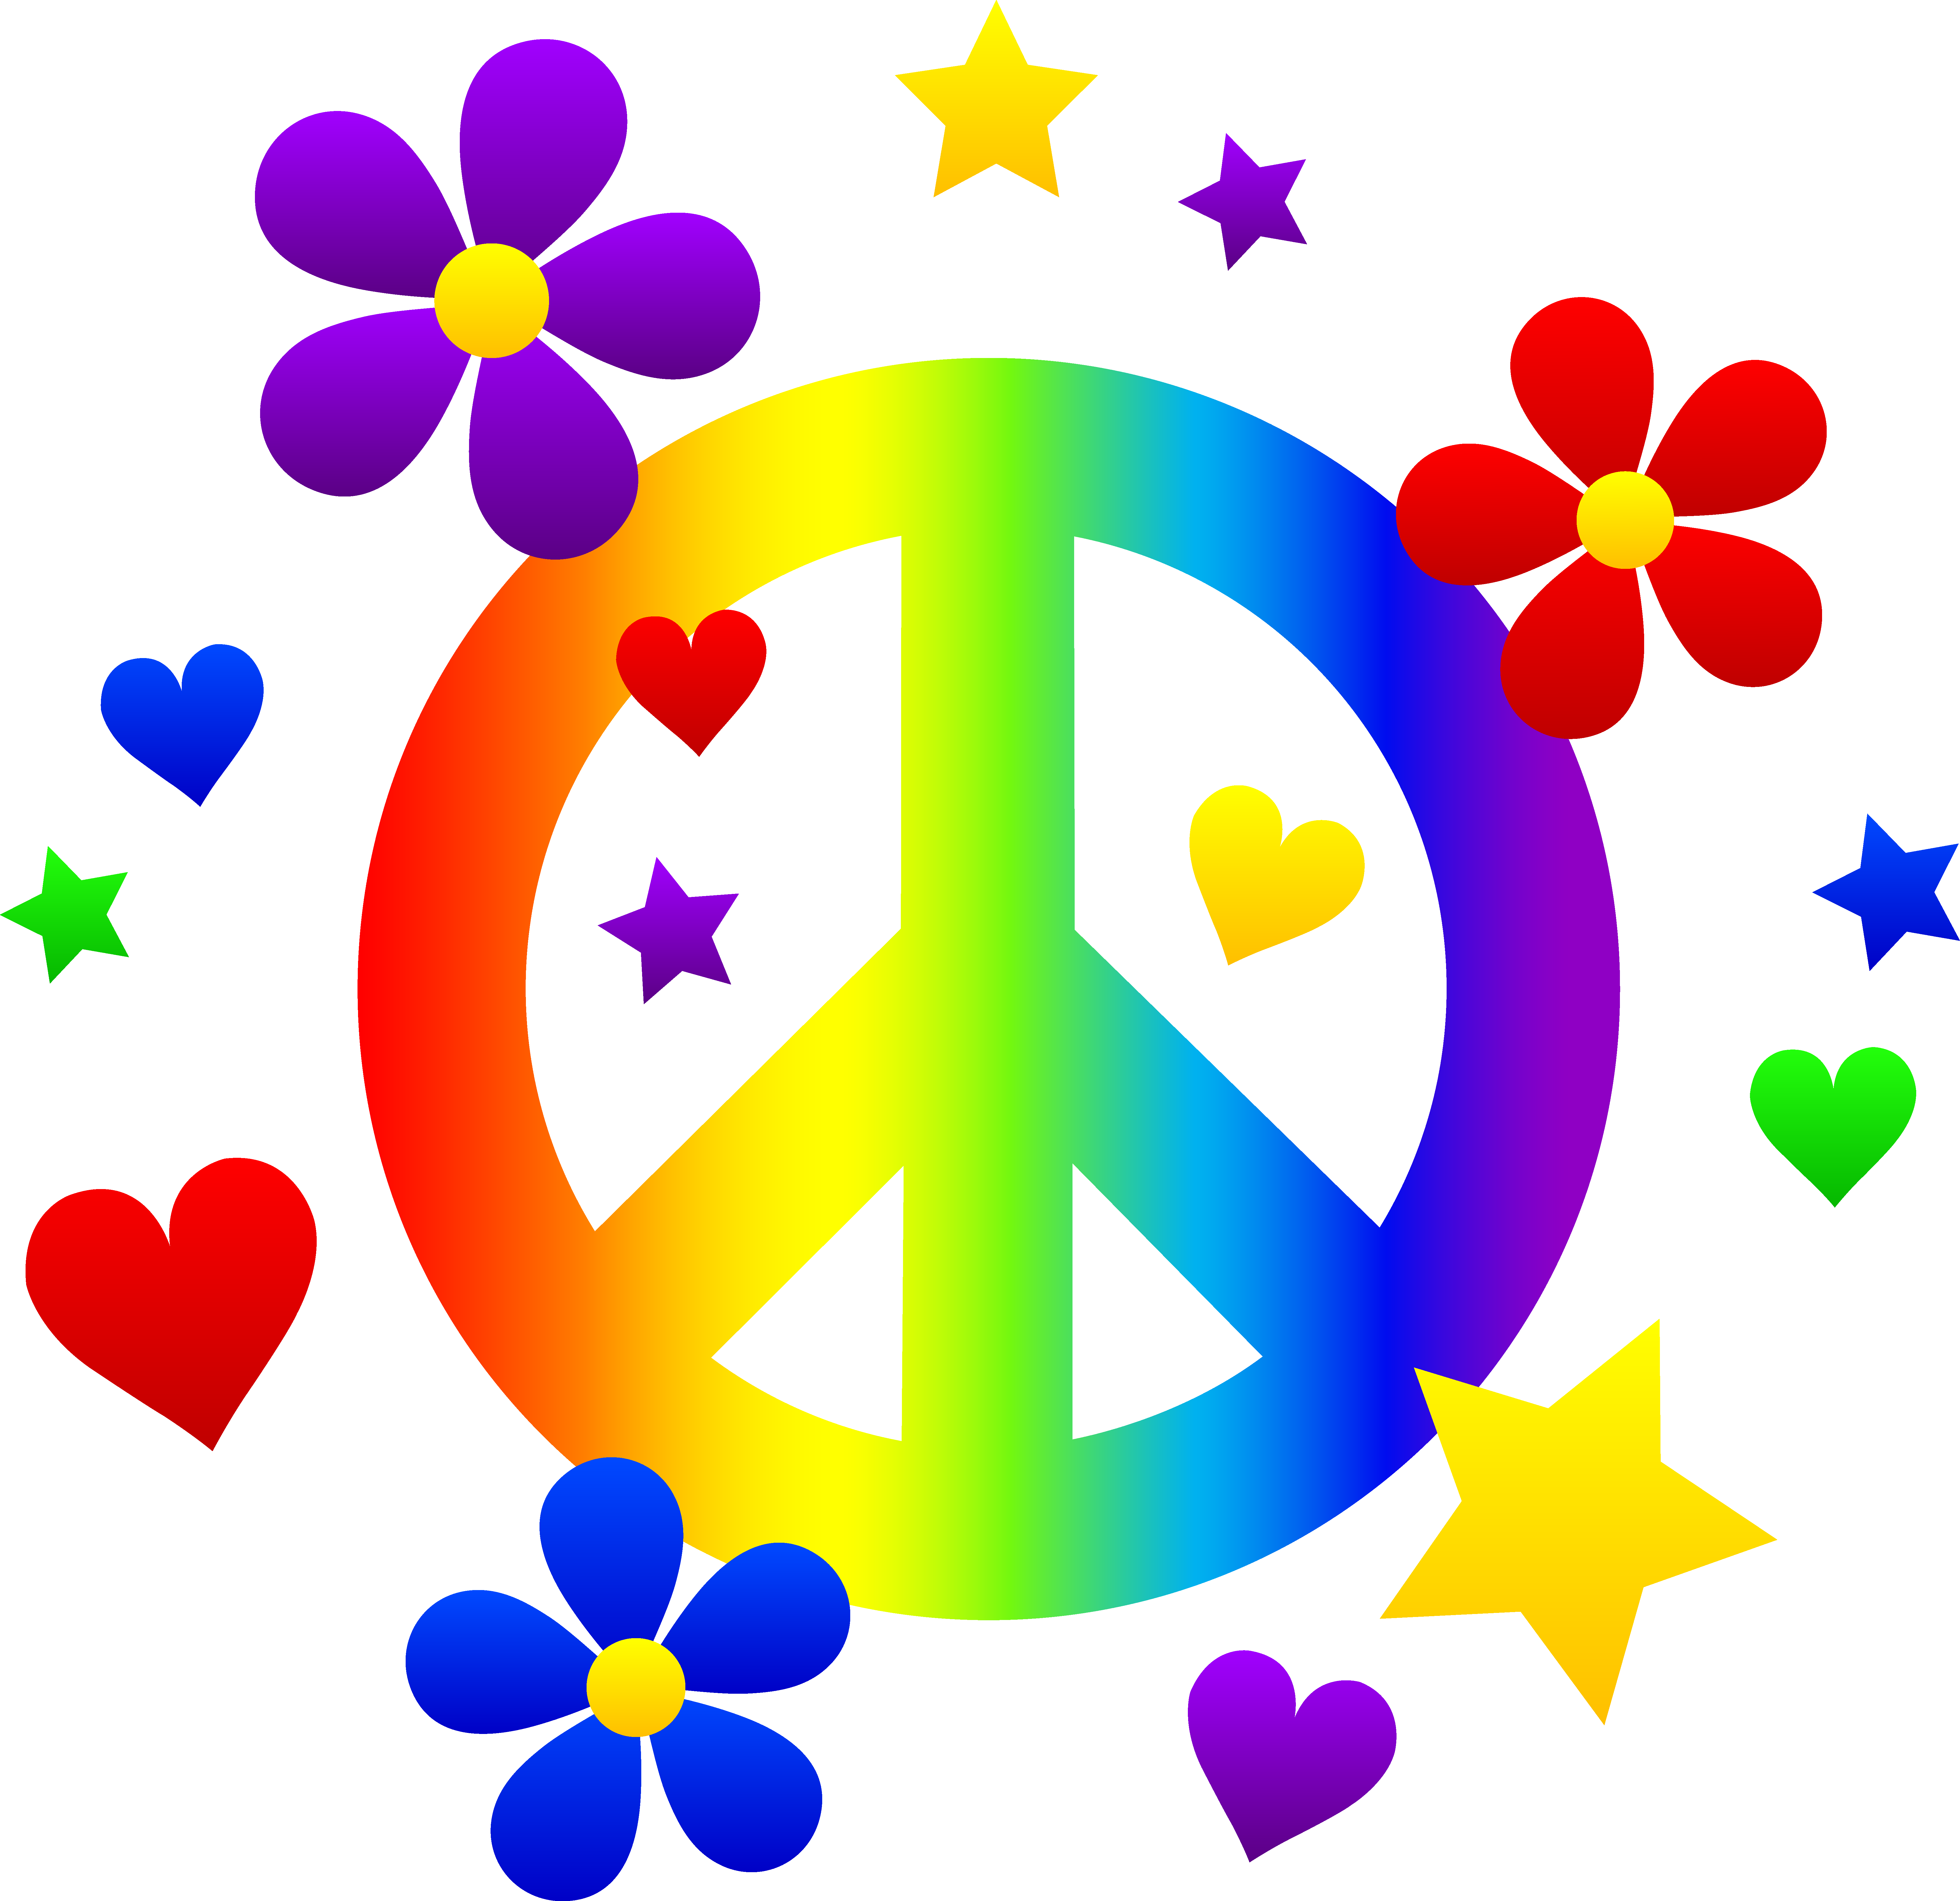 Tranquility clipart peace sign Peace flowers  Clipart sign